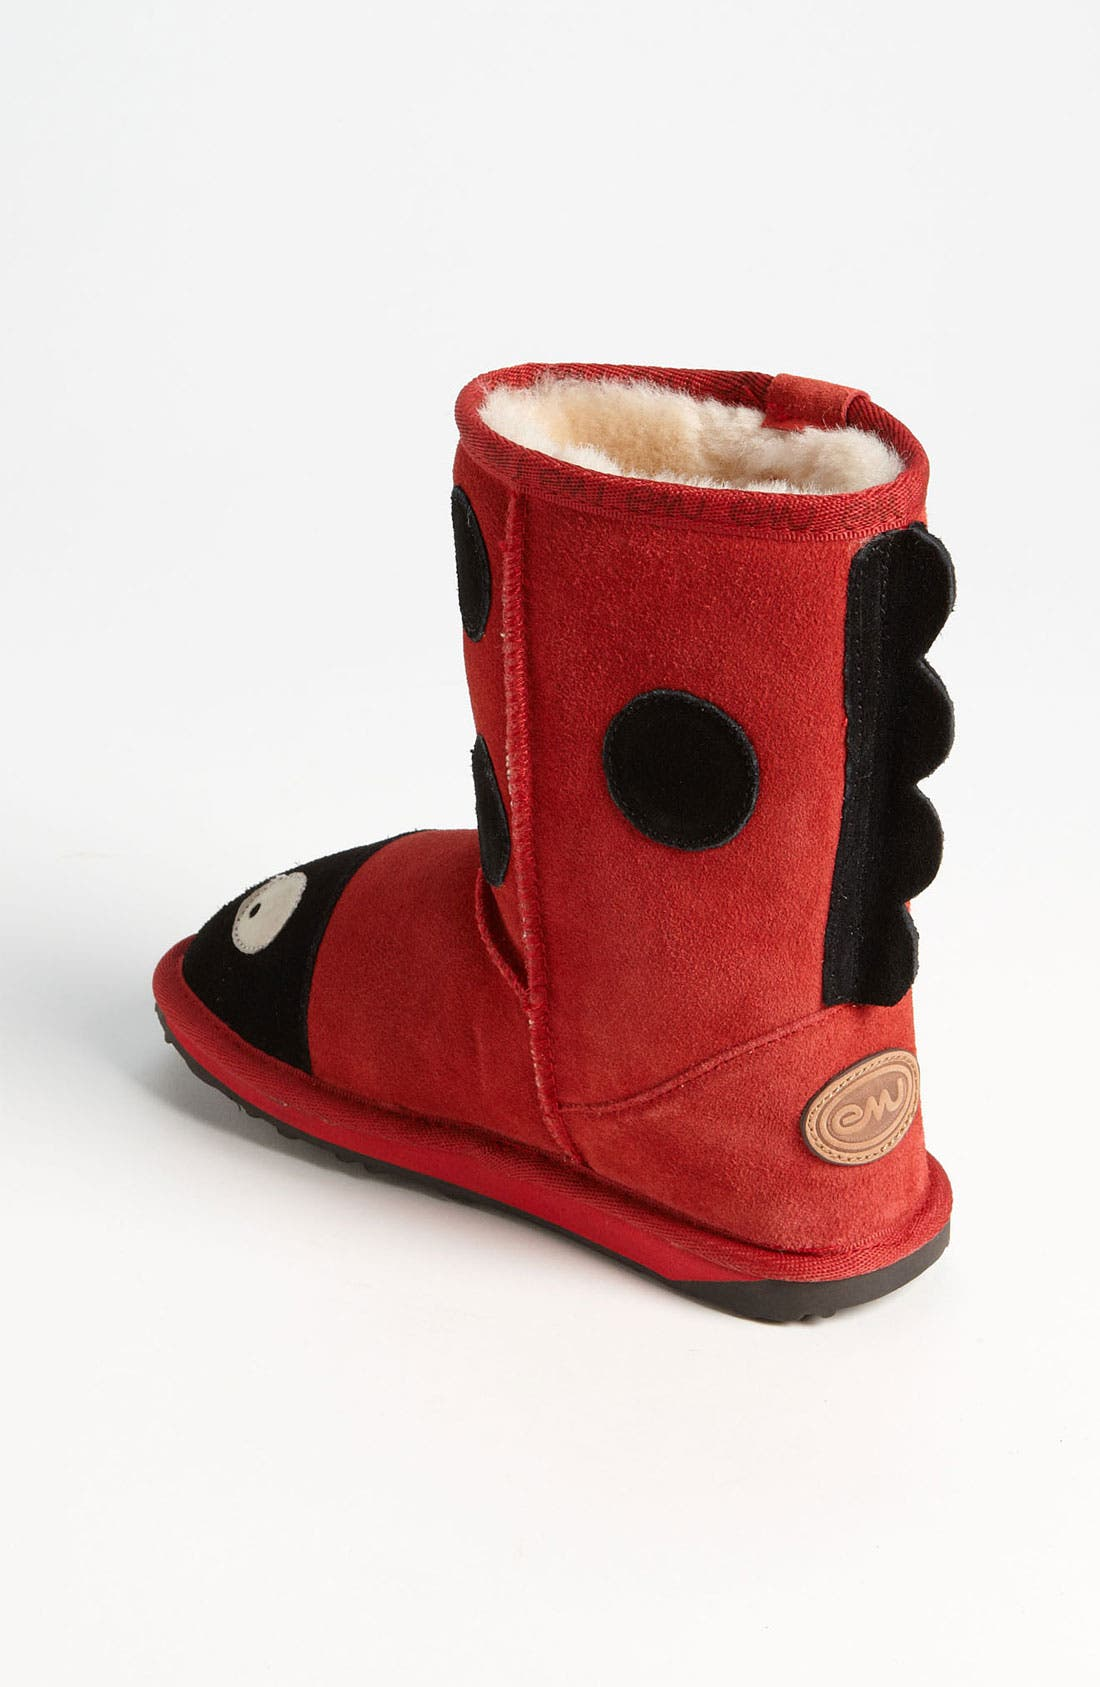 Alternate Image 2  - EMU Australia 'Little Creatures - Ladybug' Boot (Toddler, Little Kid & Big Kid)